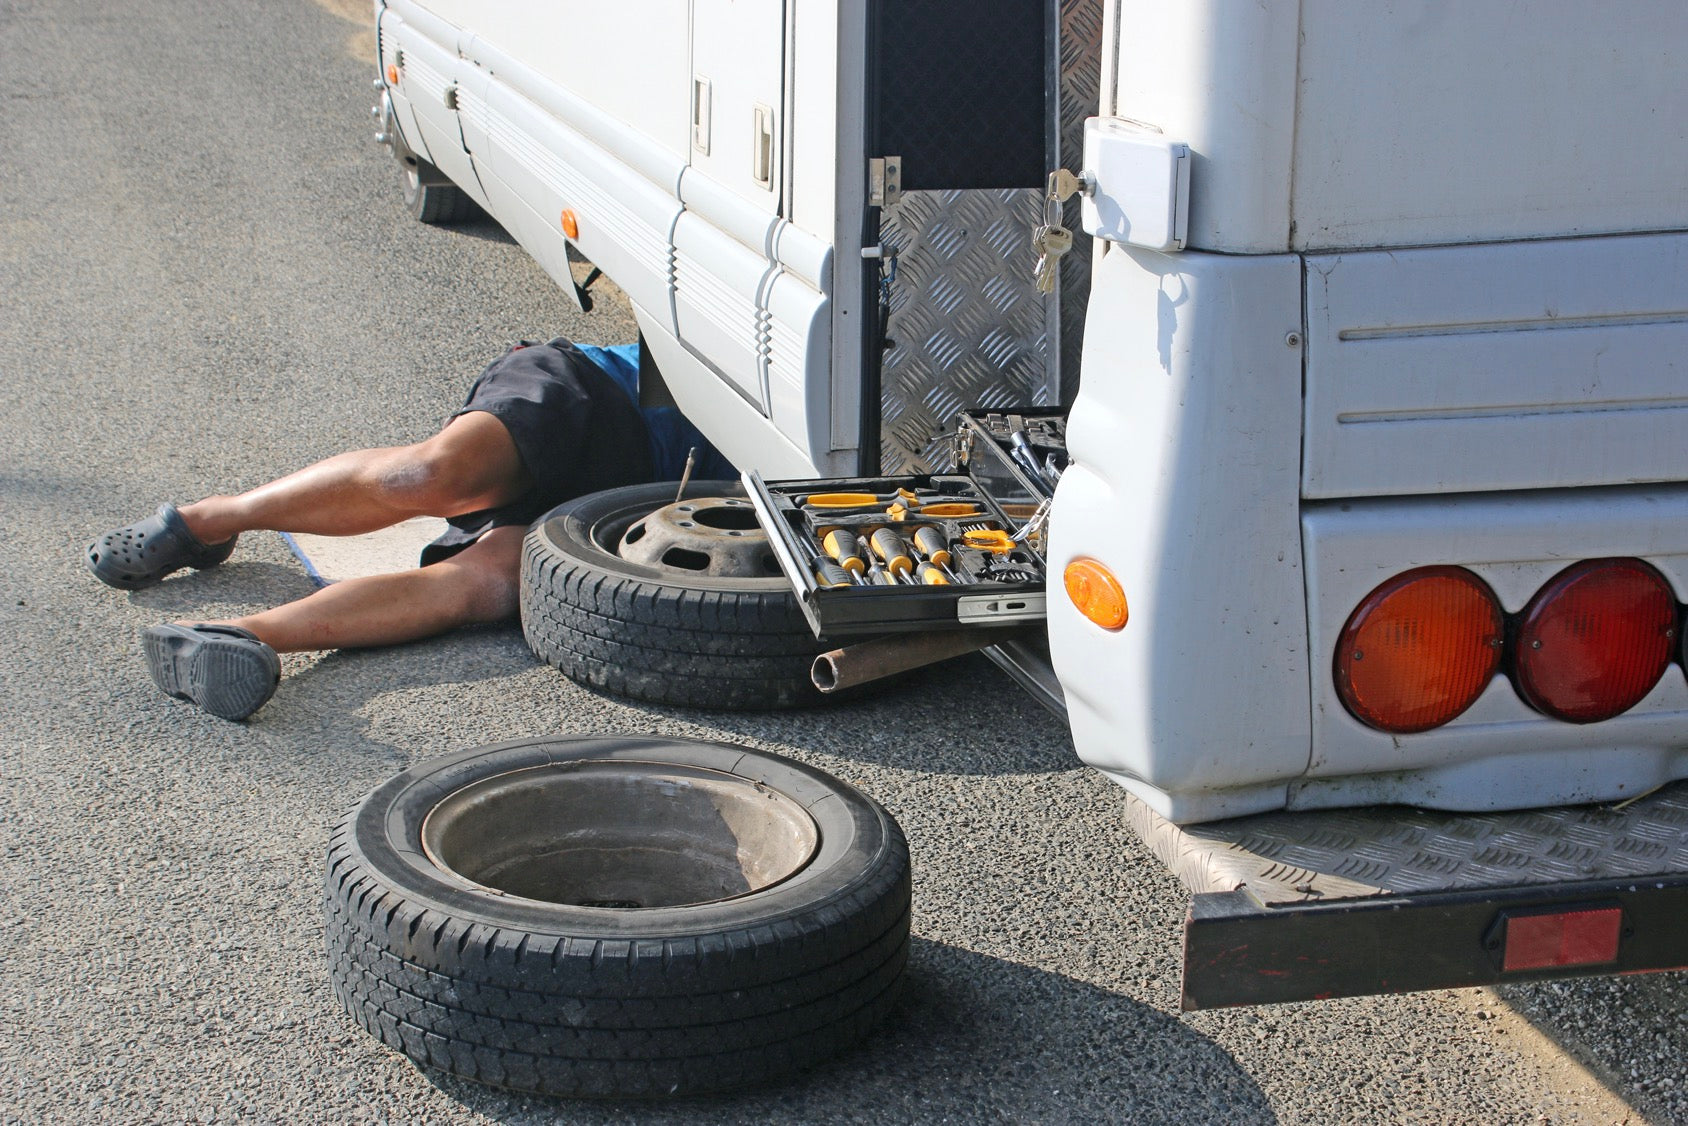 Man under recreational vehicle changing tire